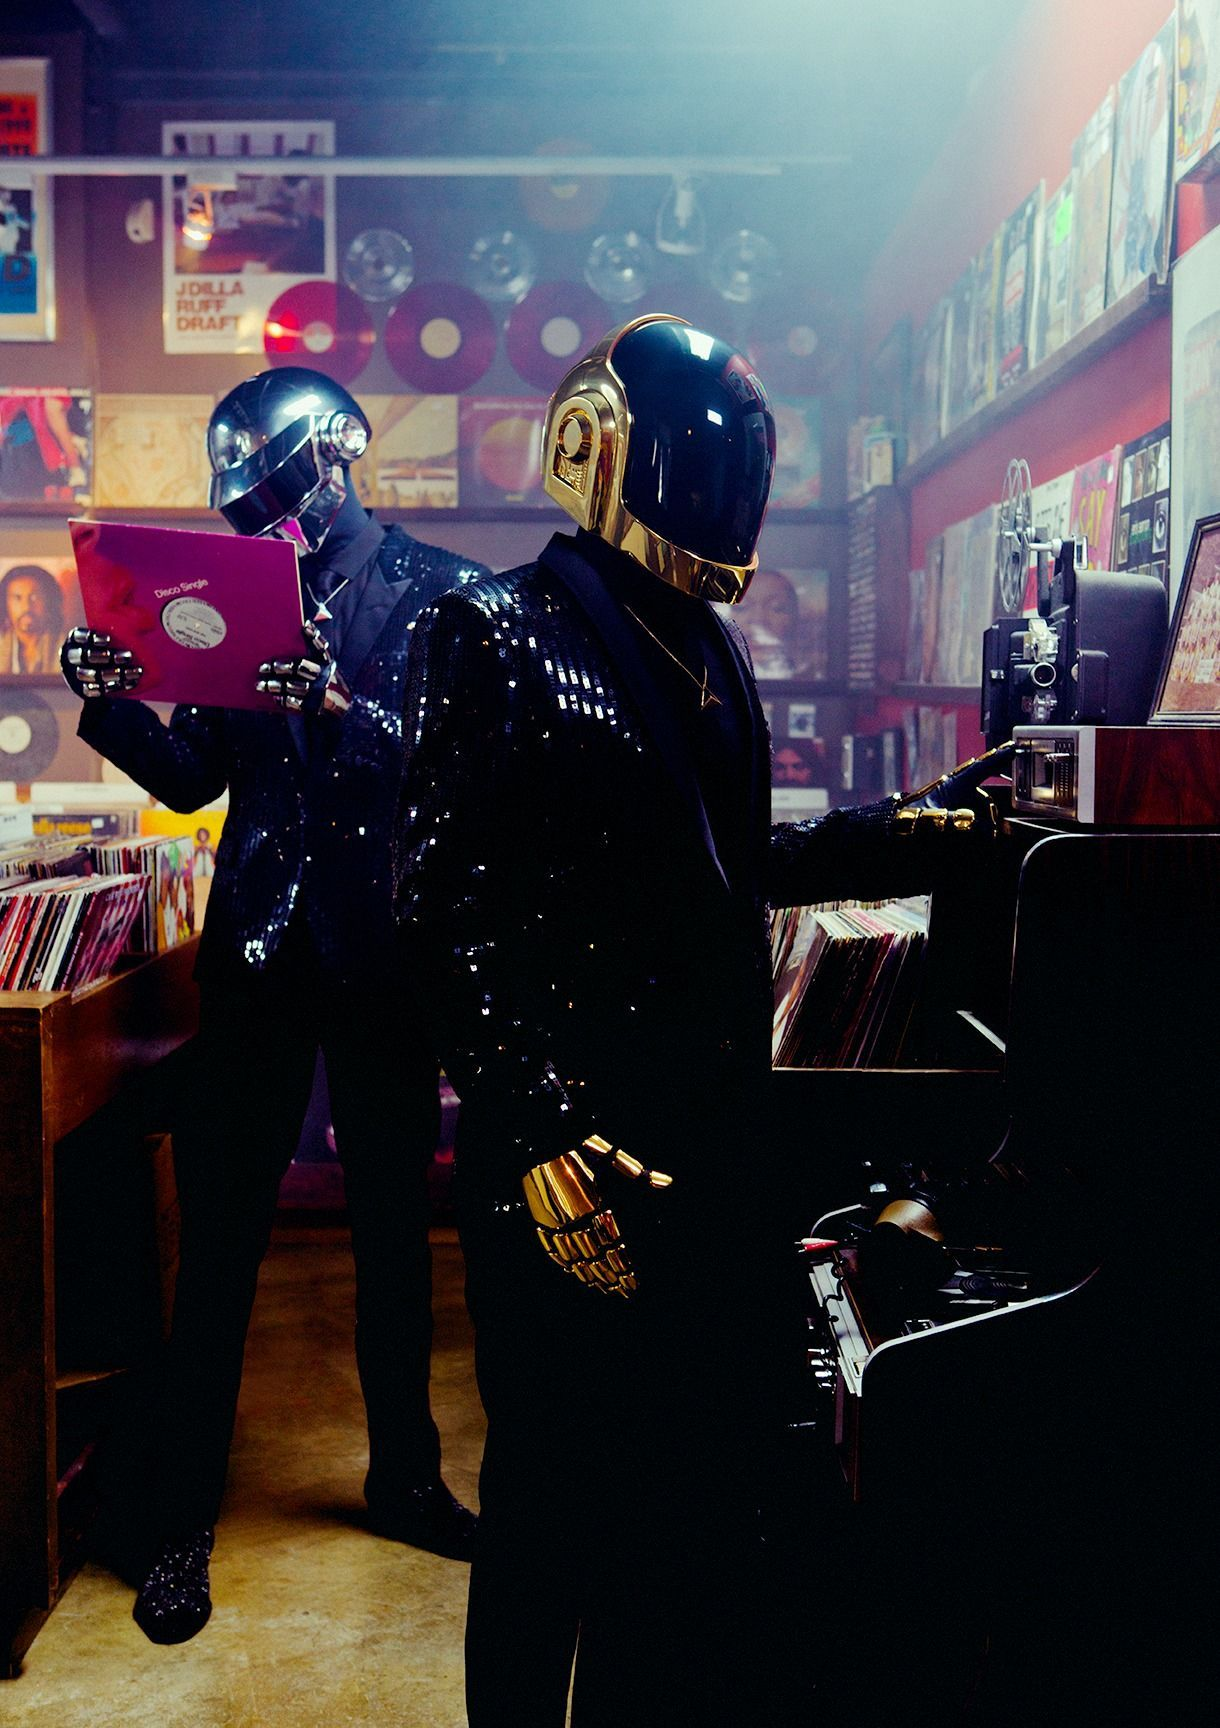 Daft Punk go from sampling disco records to creating a dance masterpiece in  2020 | Daft punk, Punk music, Thomas bangalter